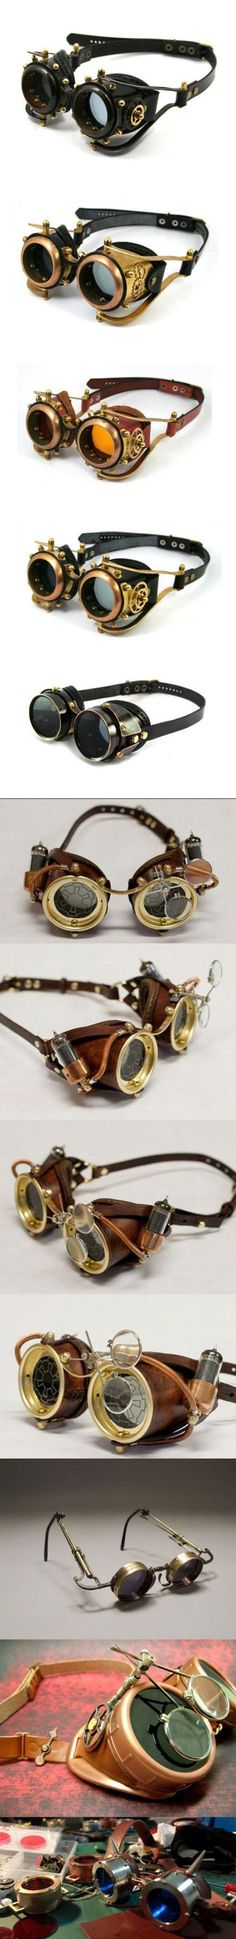 Cool steampunk eyewear